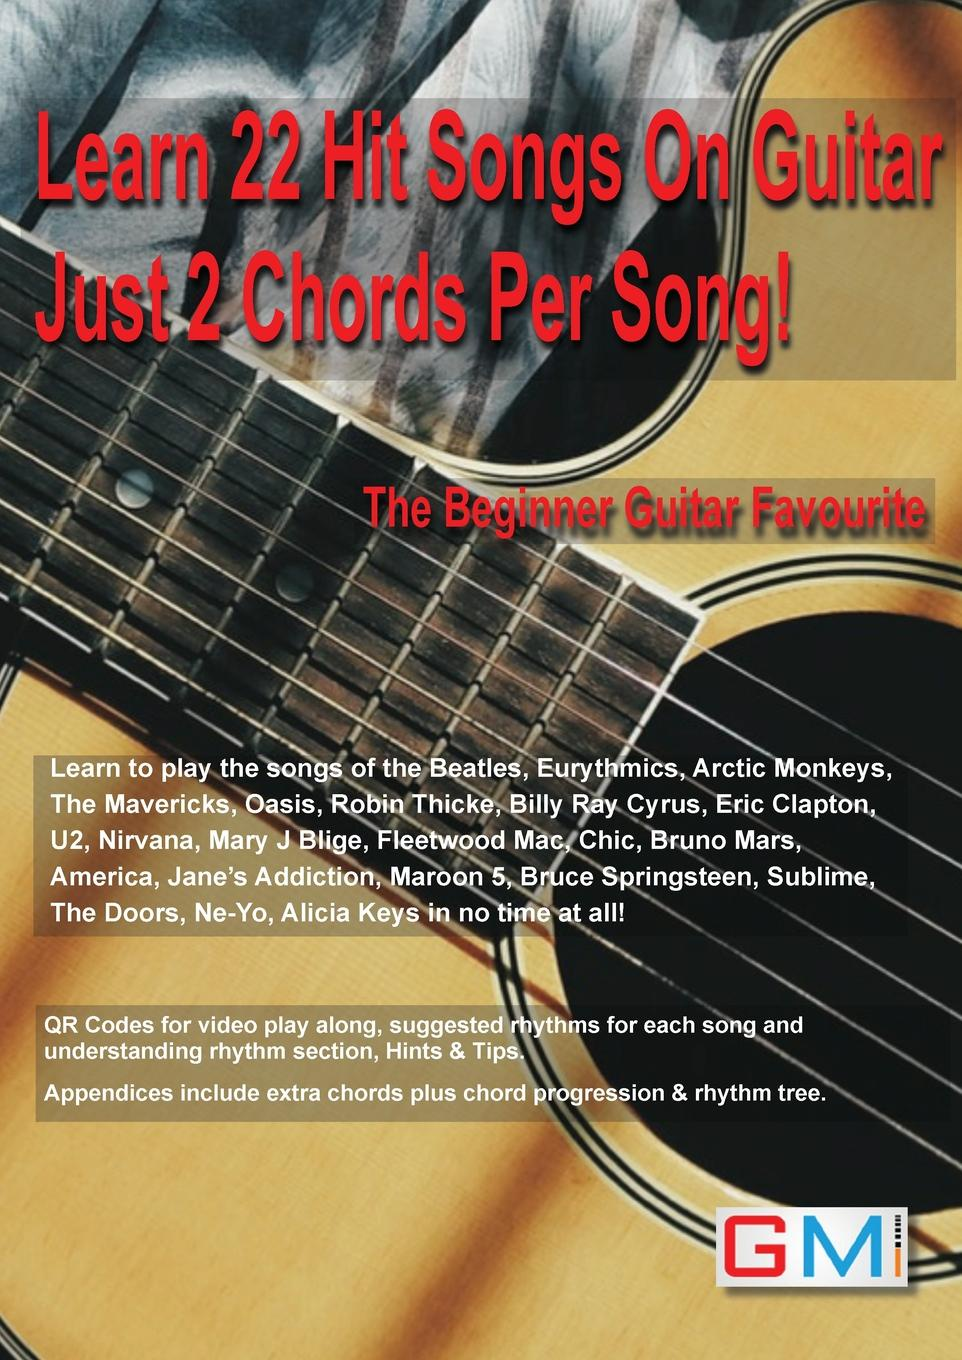 Brockie Ged Learn 22 Hit Songs On Guitar Just 2 Chords Per Song!. The Beginners Guitar Favourite dan lupo guitar chords diminished 7 chords